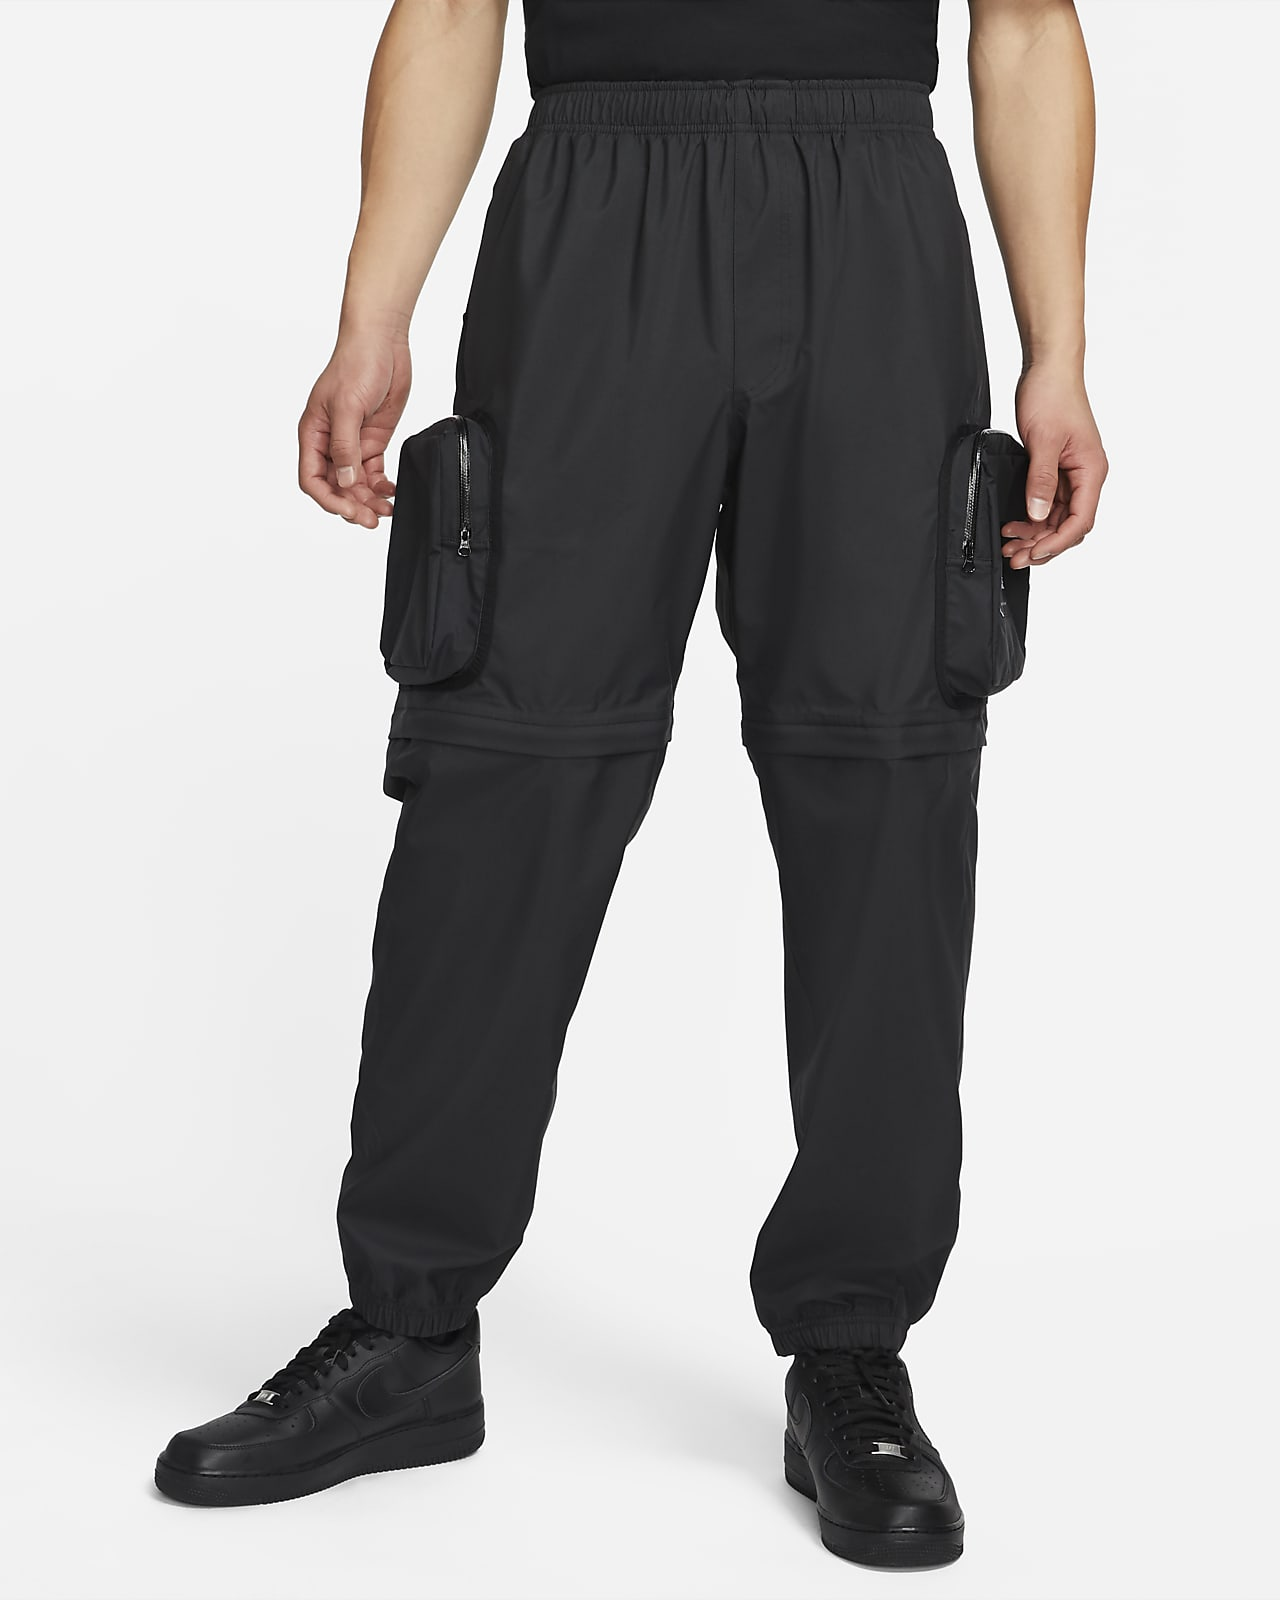 Nike x Undercover 2-In-1 Trousers